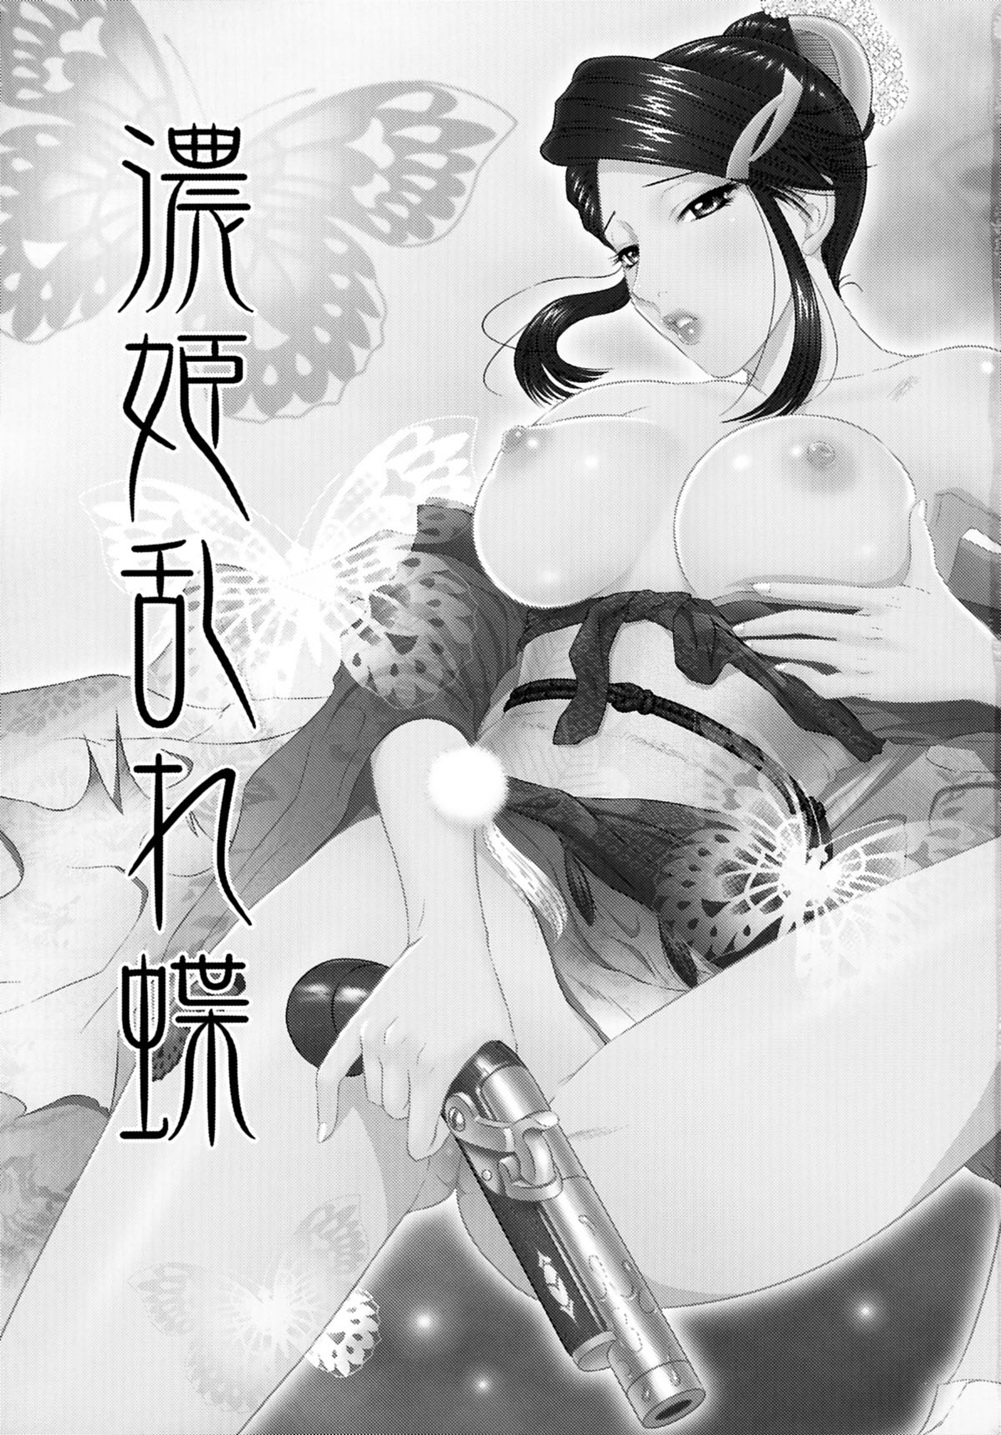 Sengoku warriors hentai adult download